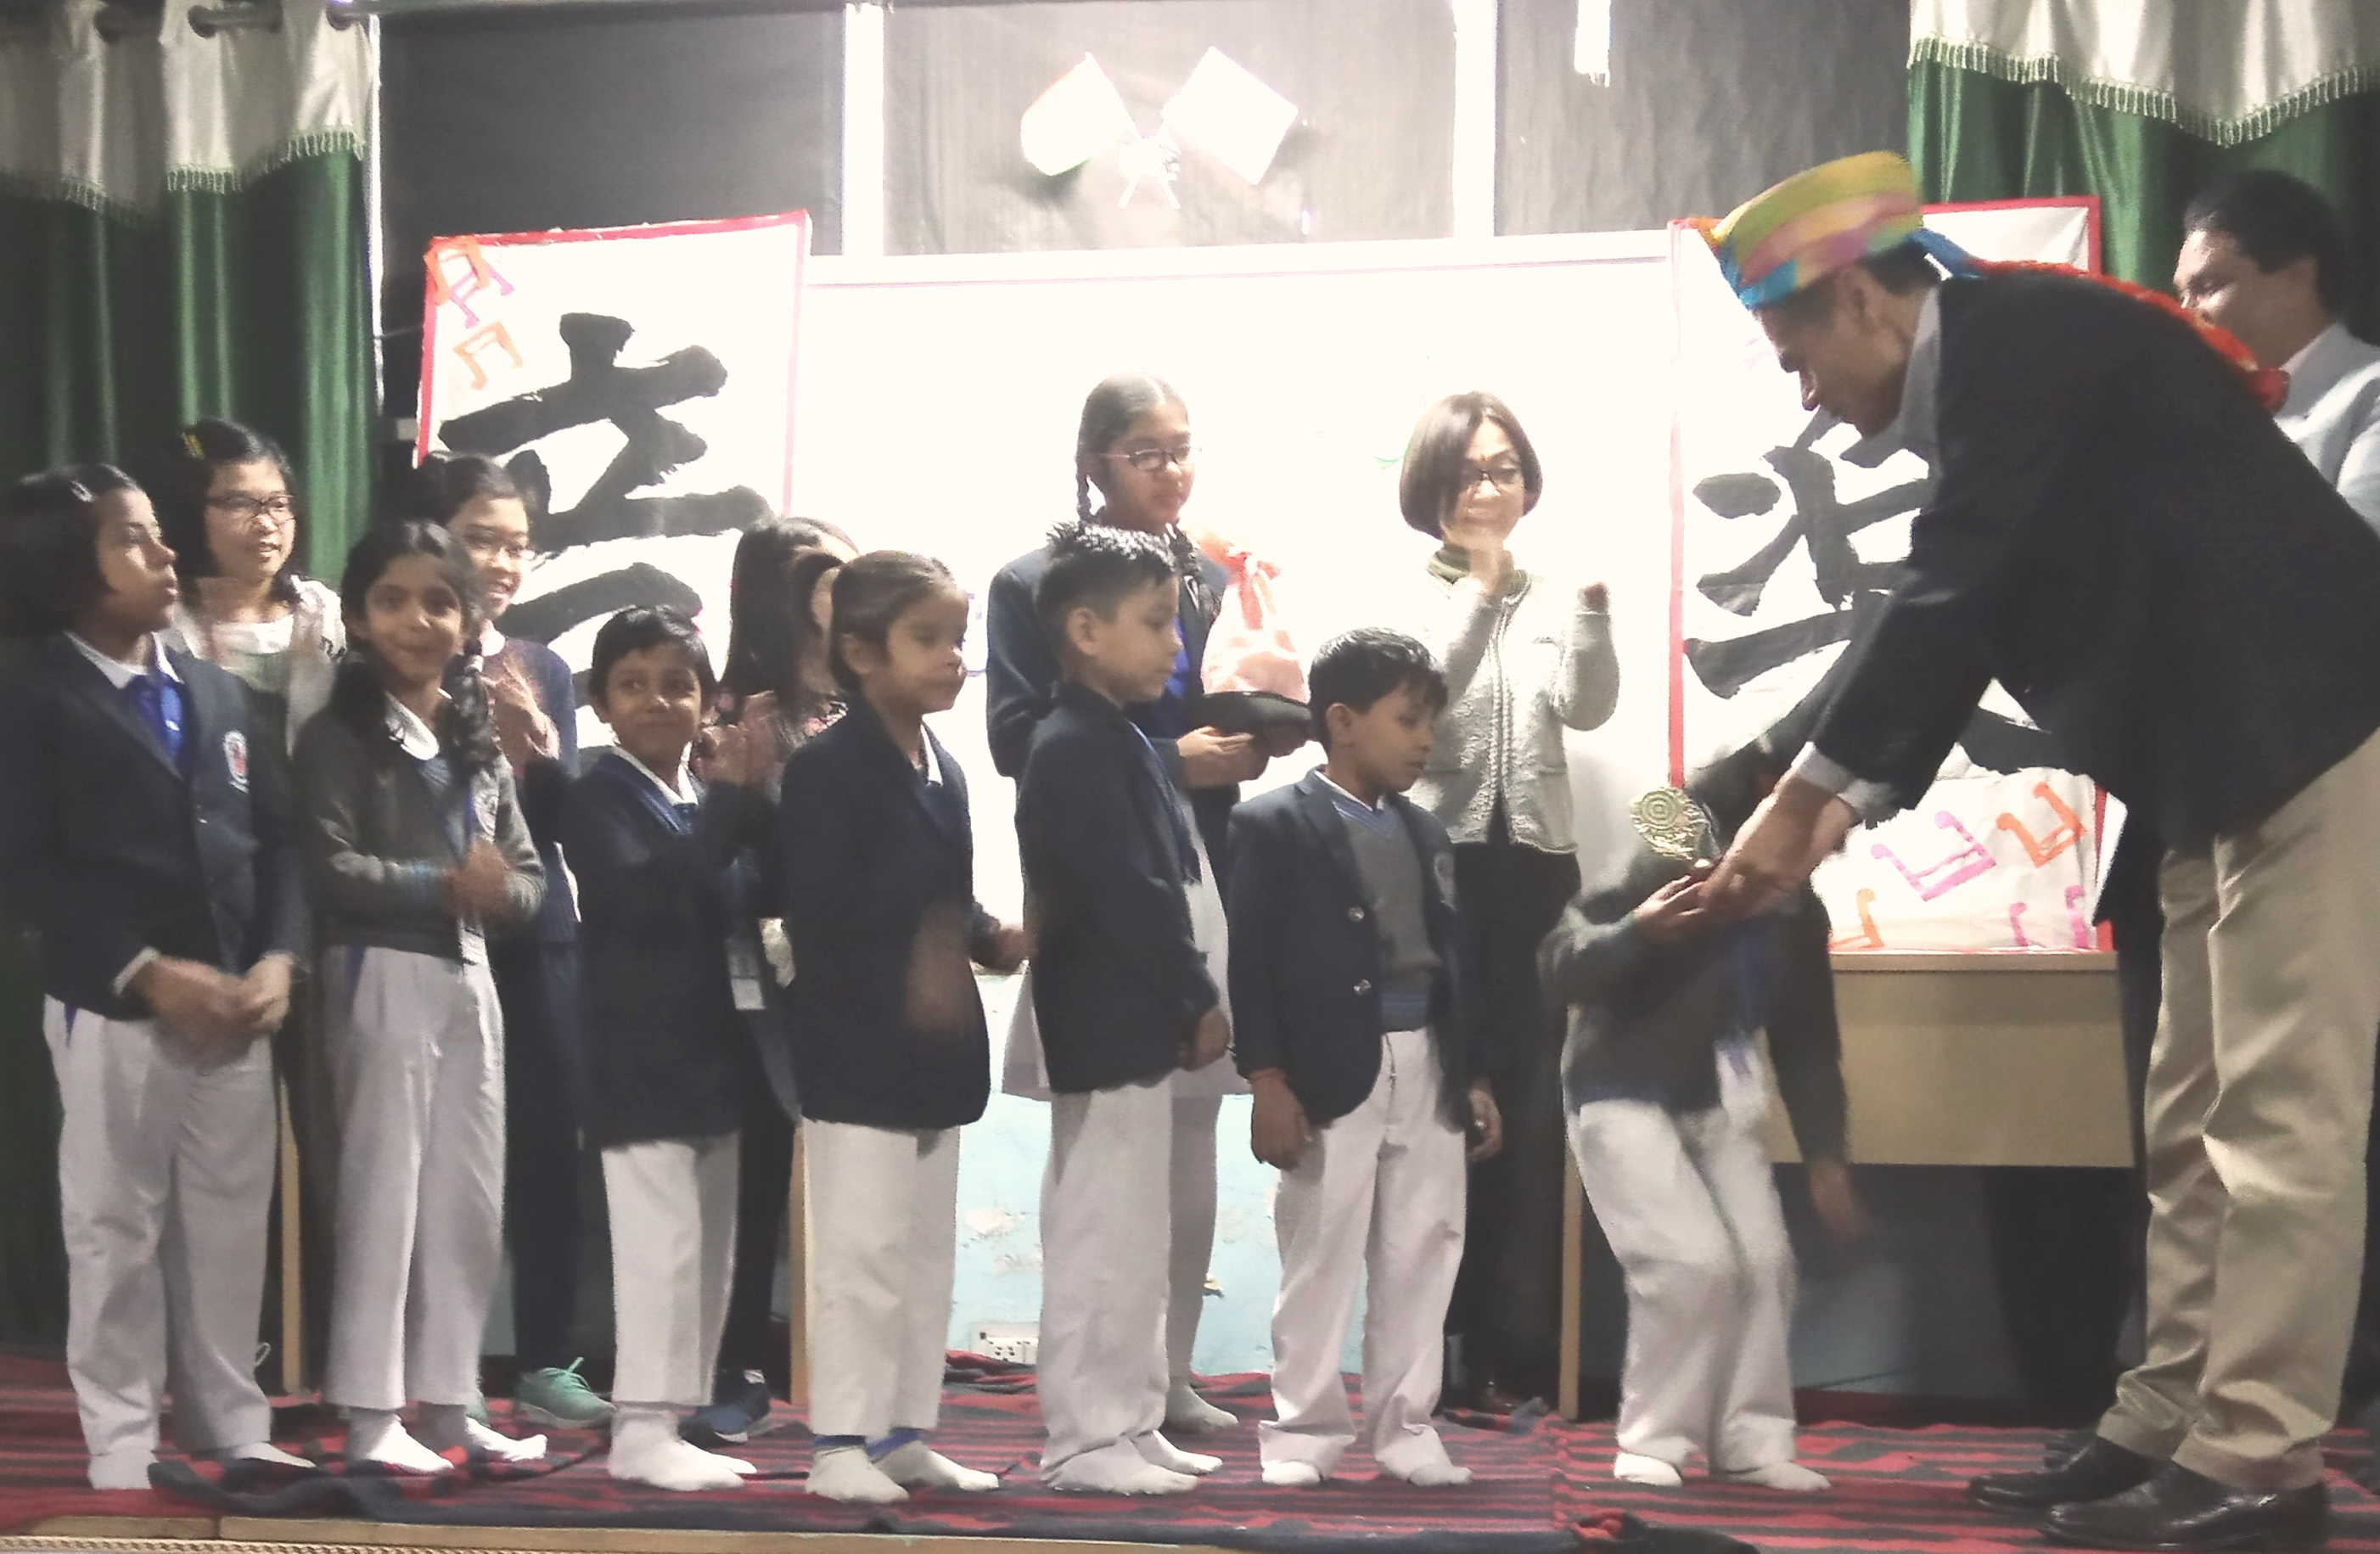 Japanese music competition